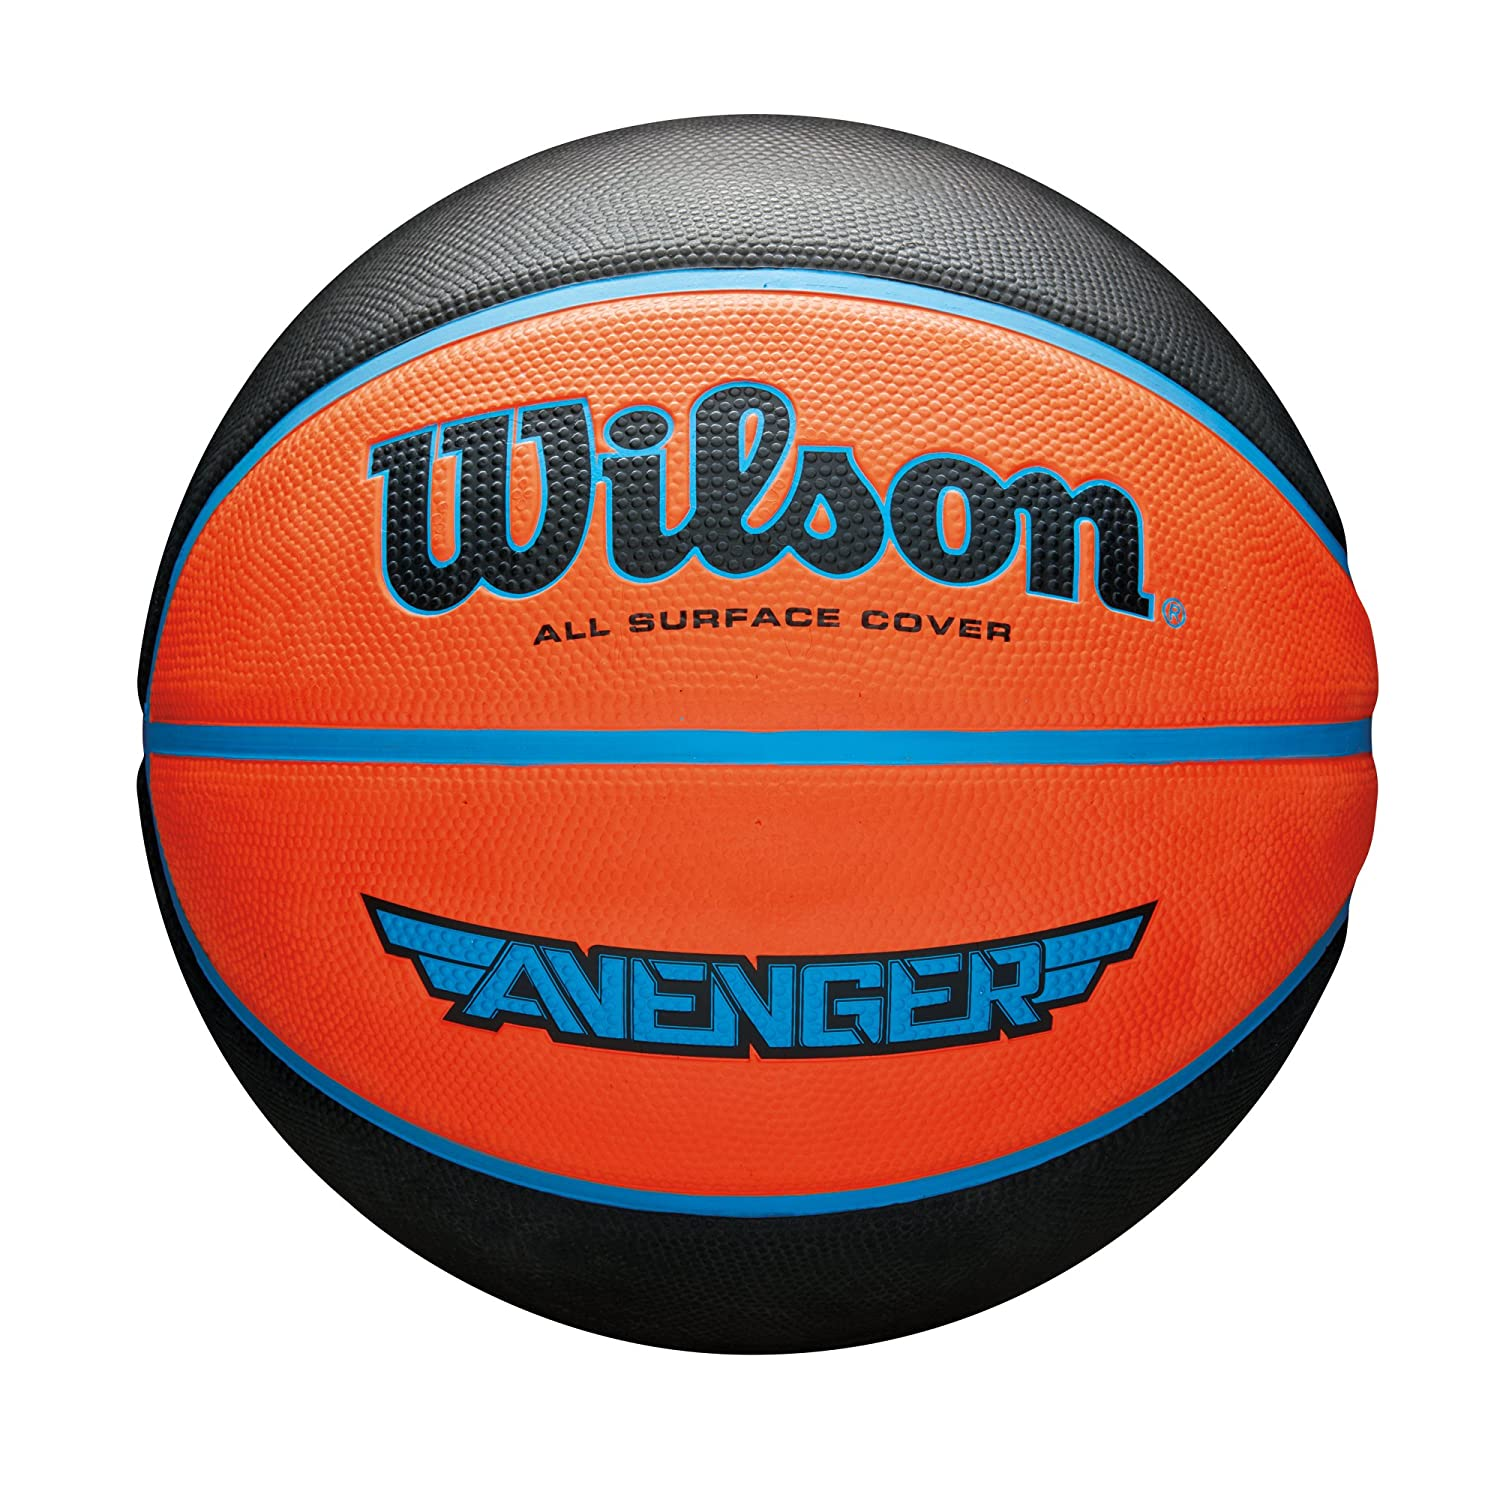 Wilson All Surface-Basketball, Asphalt, Sportparkett, AVENGER WIMX4|#WILSON